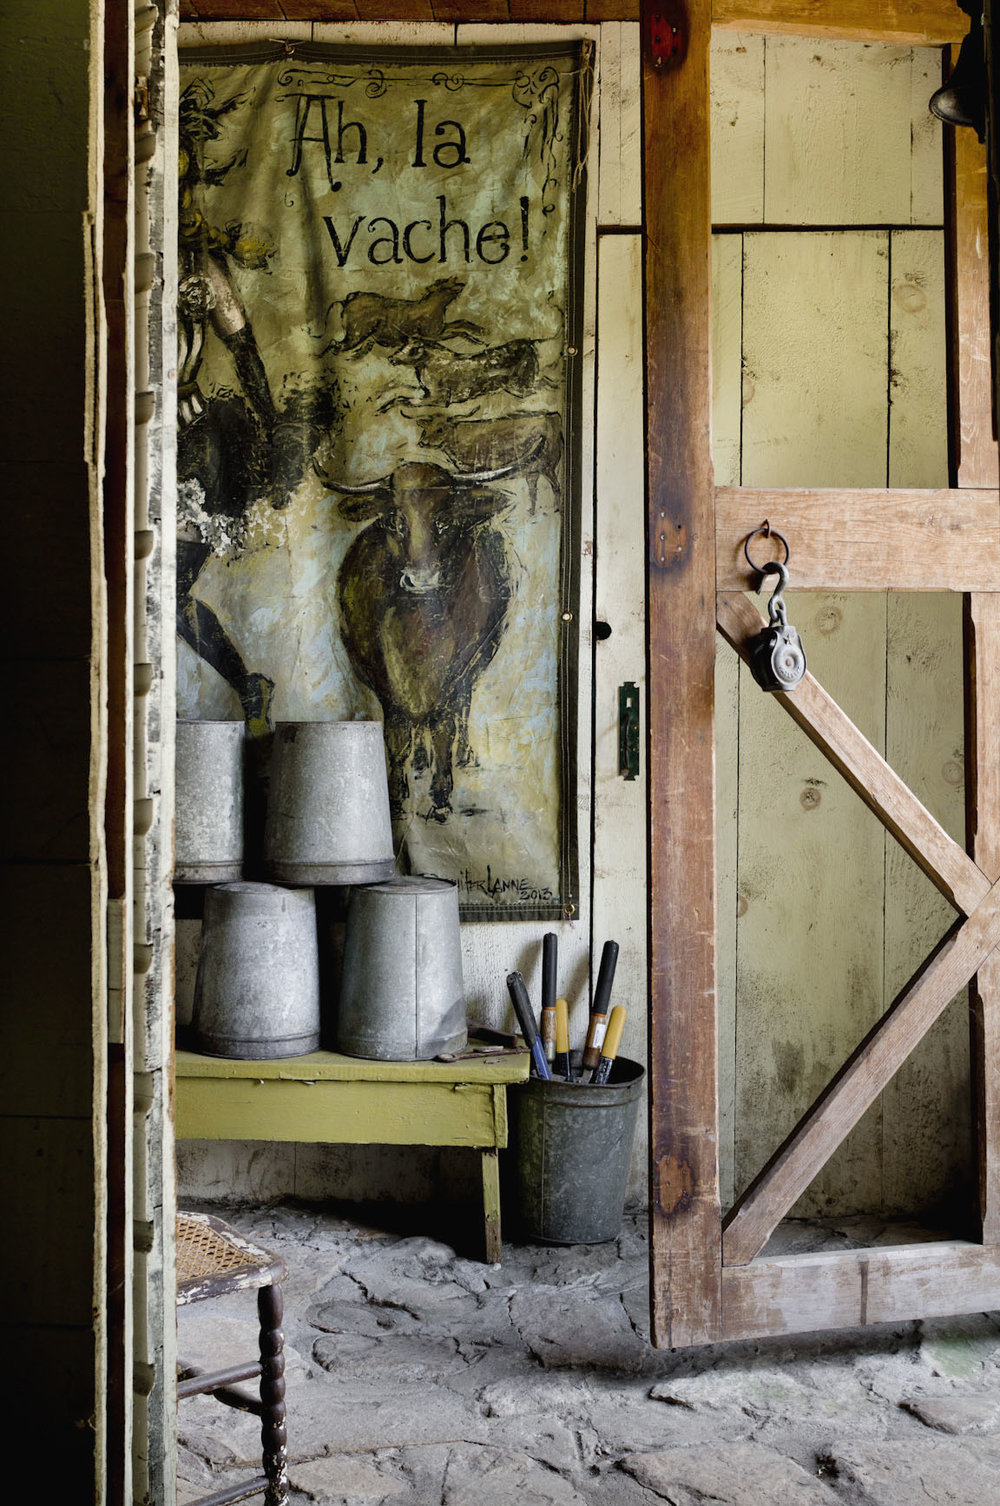 rustic-farm-barn-entrance-artist-interior-photography.jpg